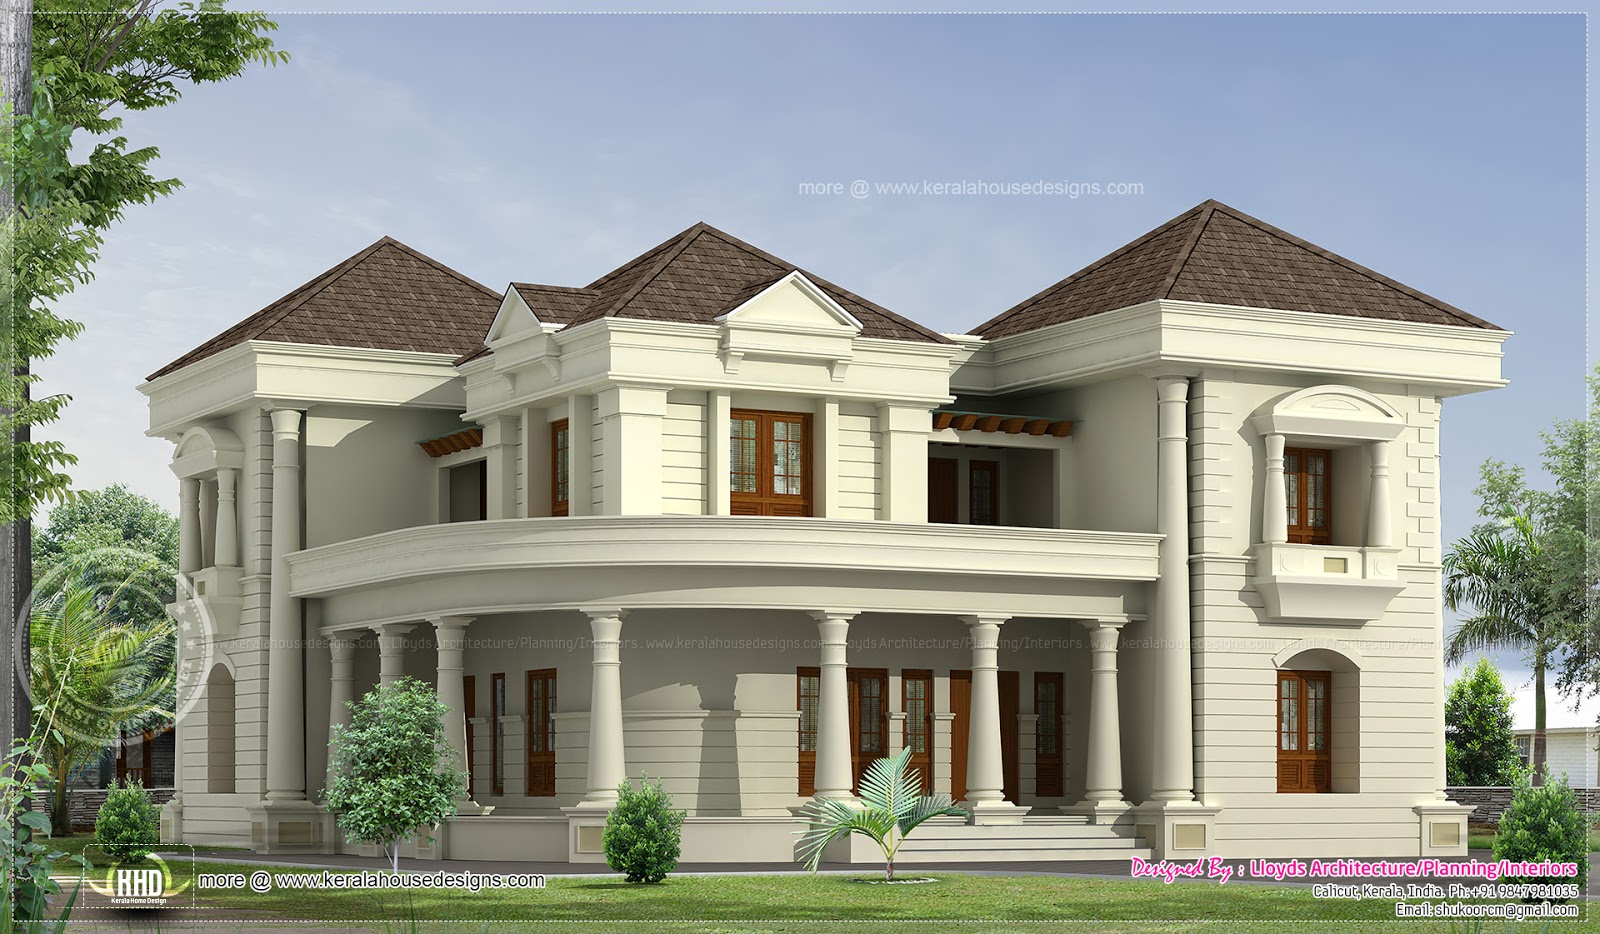 5 bedroom luxurious bungalow floor plan and 3d view for Indian small house design 2 bedroom